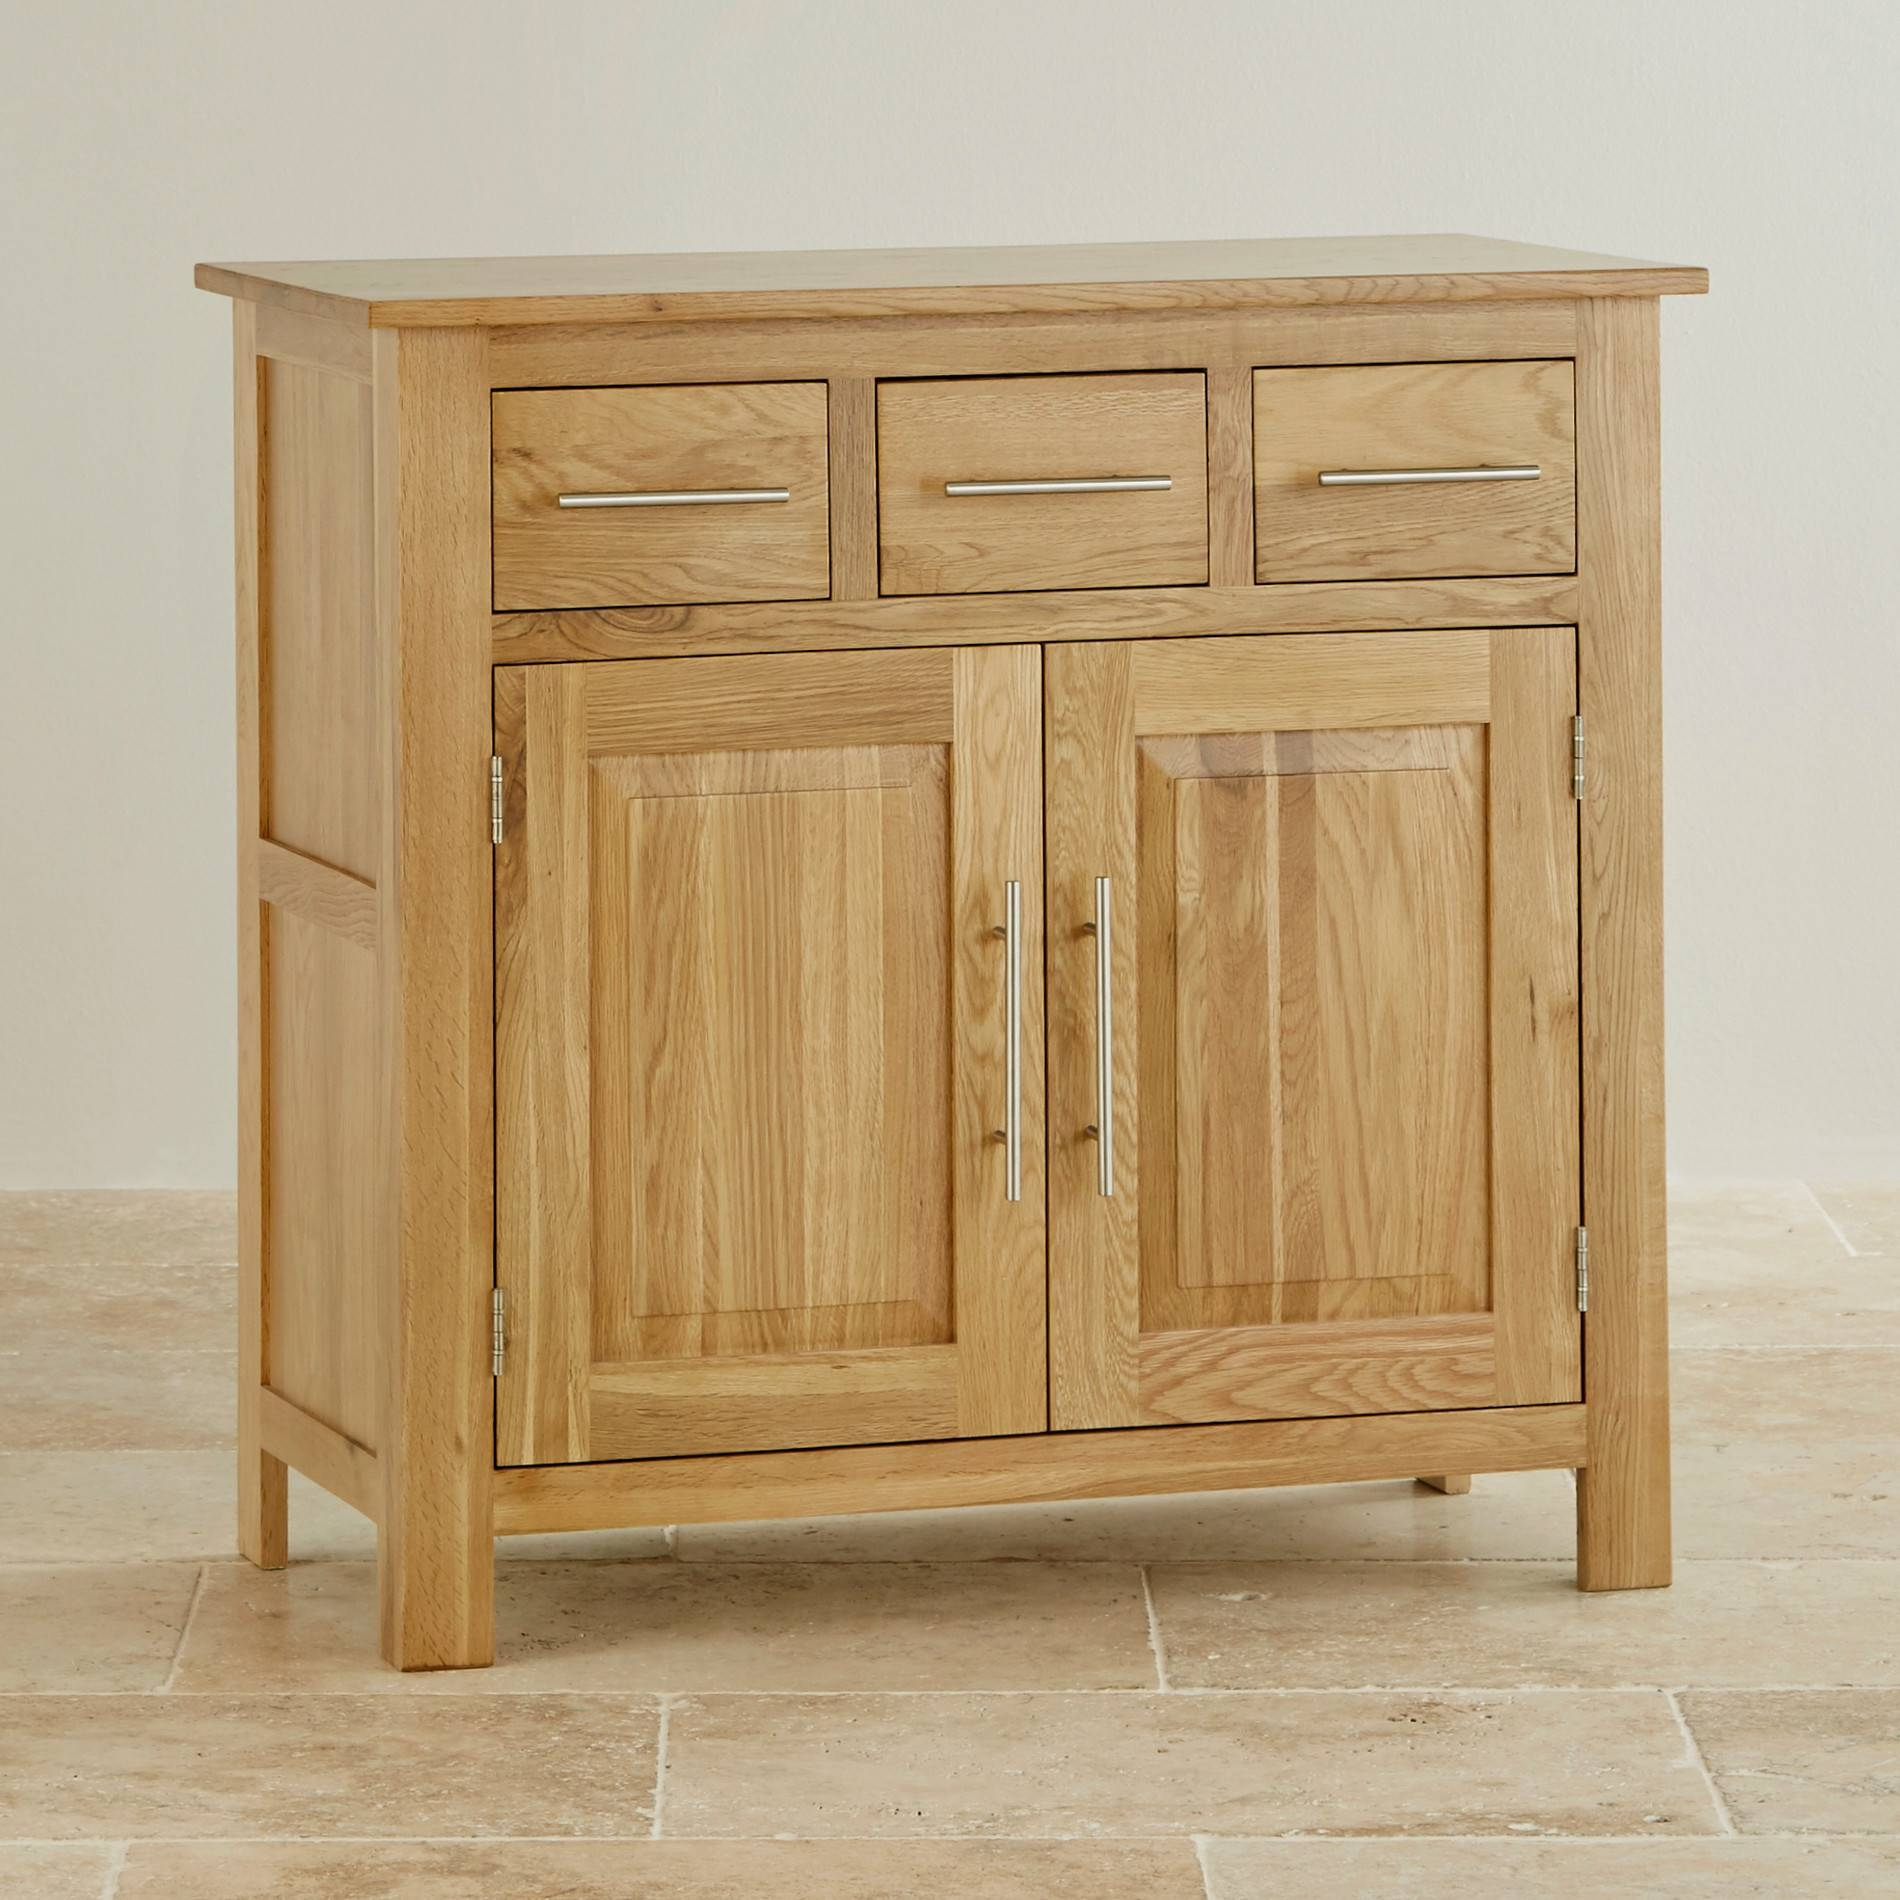 Rivermead Natural Solid Oak Small Sideboard | Oak Furniture Land Throughout Small Sideboards With Drawers (View 14 of 30)